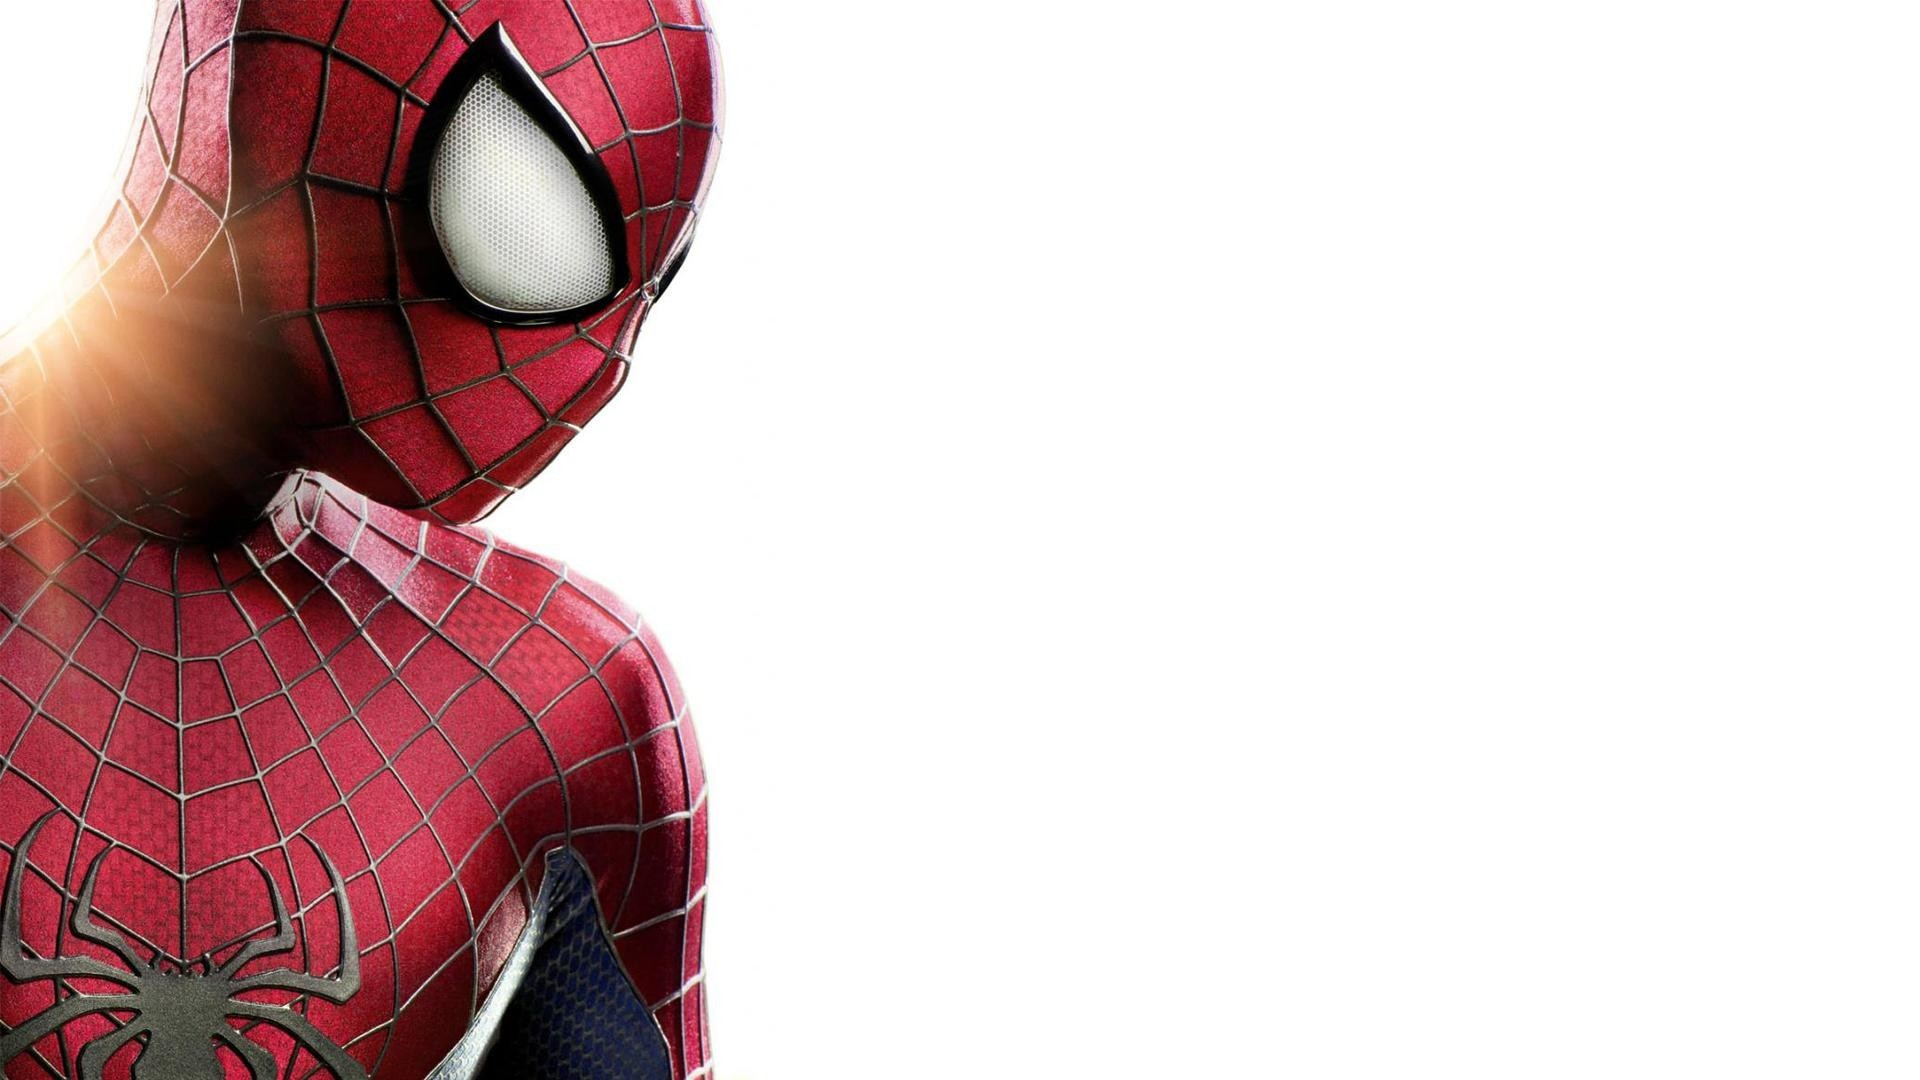 1920x1080 the amazing spider man 2 wallpaper HD